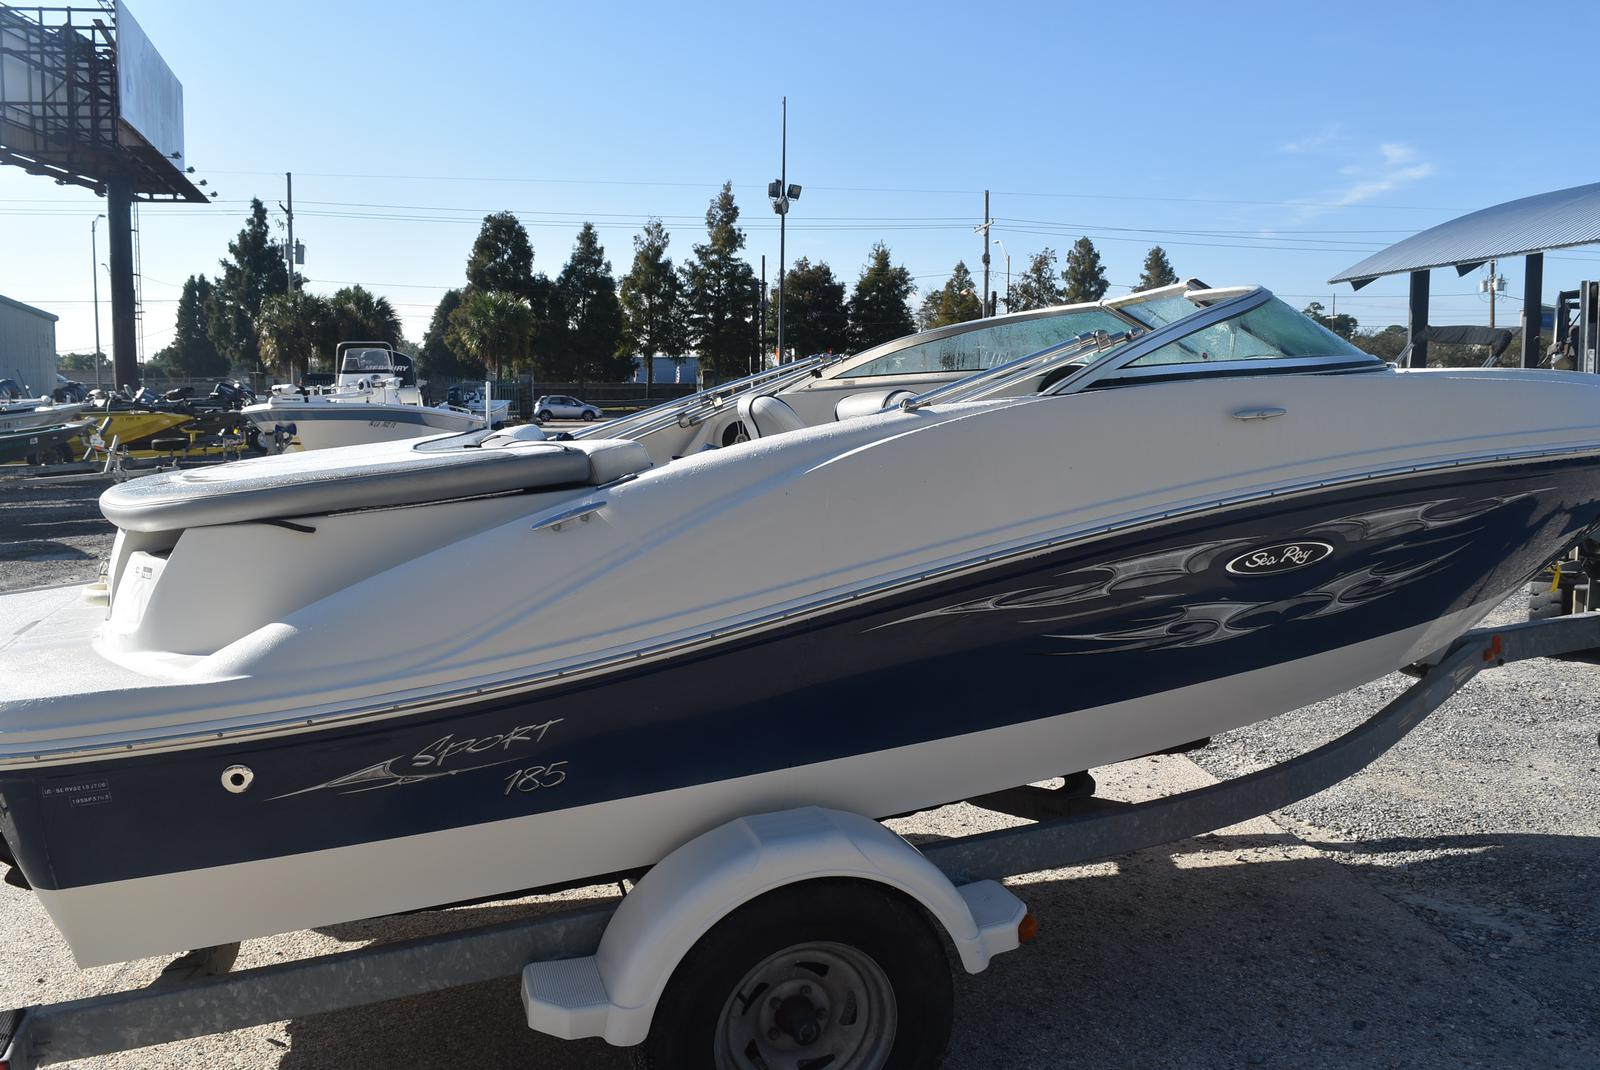 2008 Sea Ray boat for sale, model of the boat is 185 & Image # 6 of 9